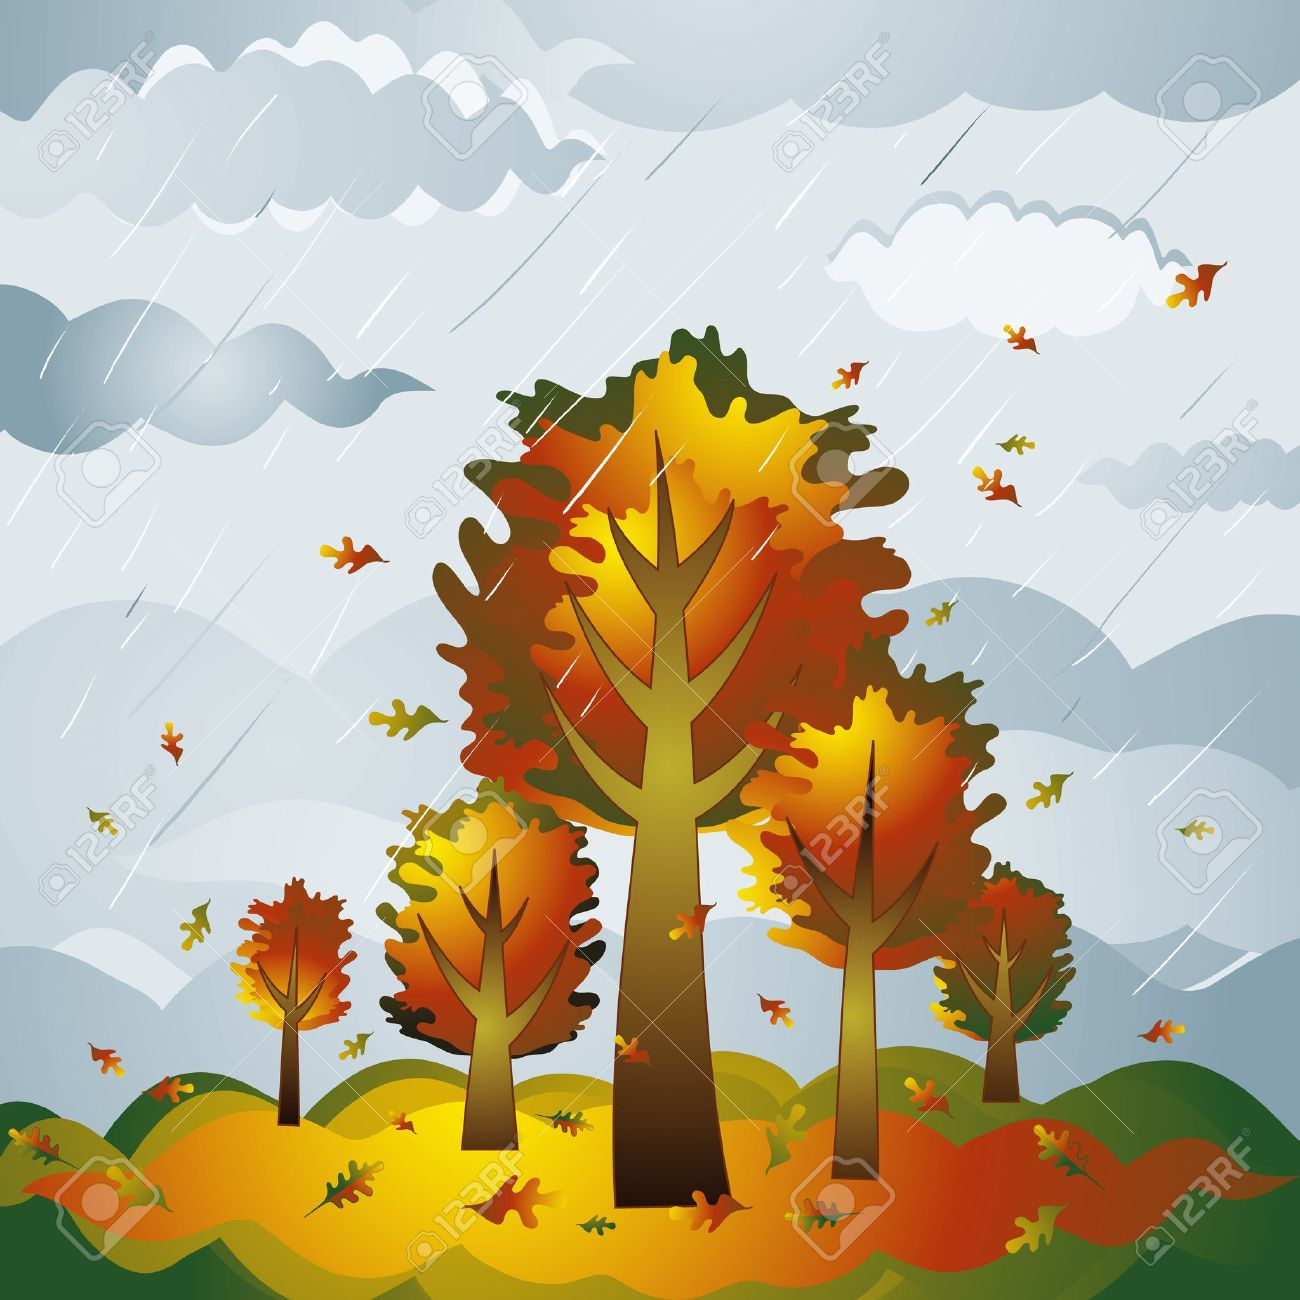 Free beautiful cliparts download. Clipart fall autumn day